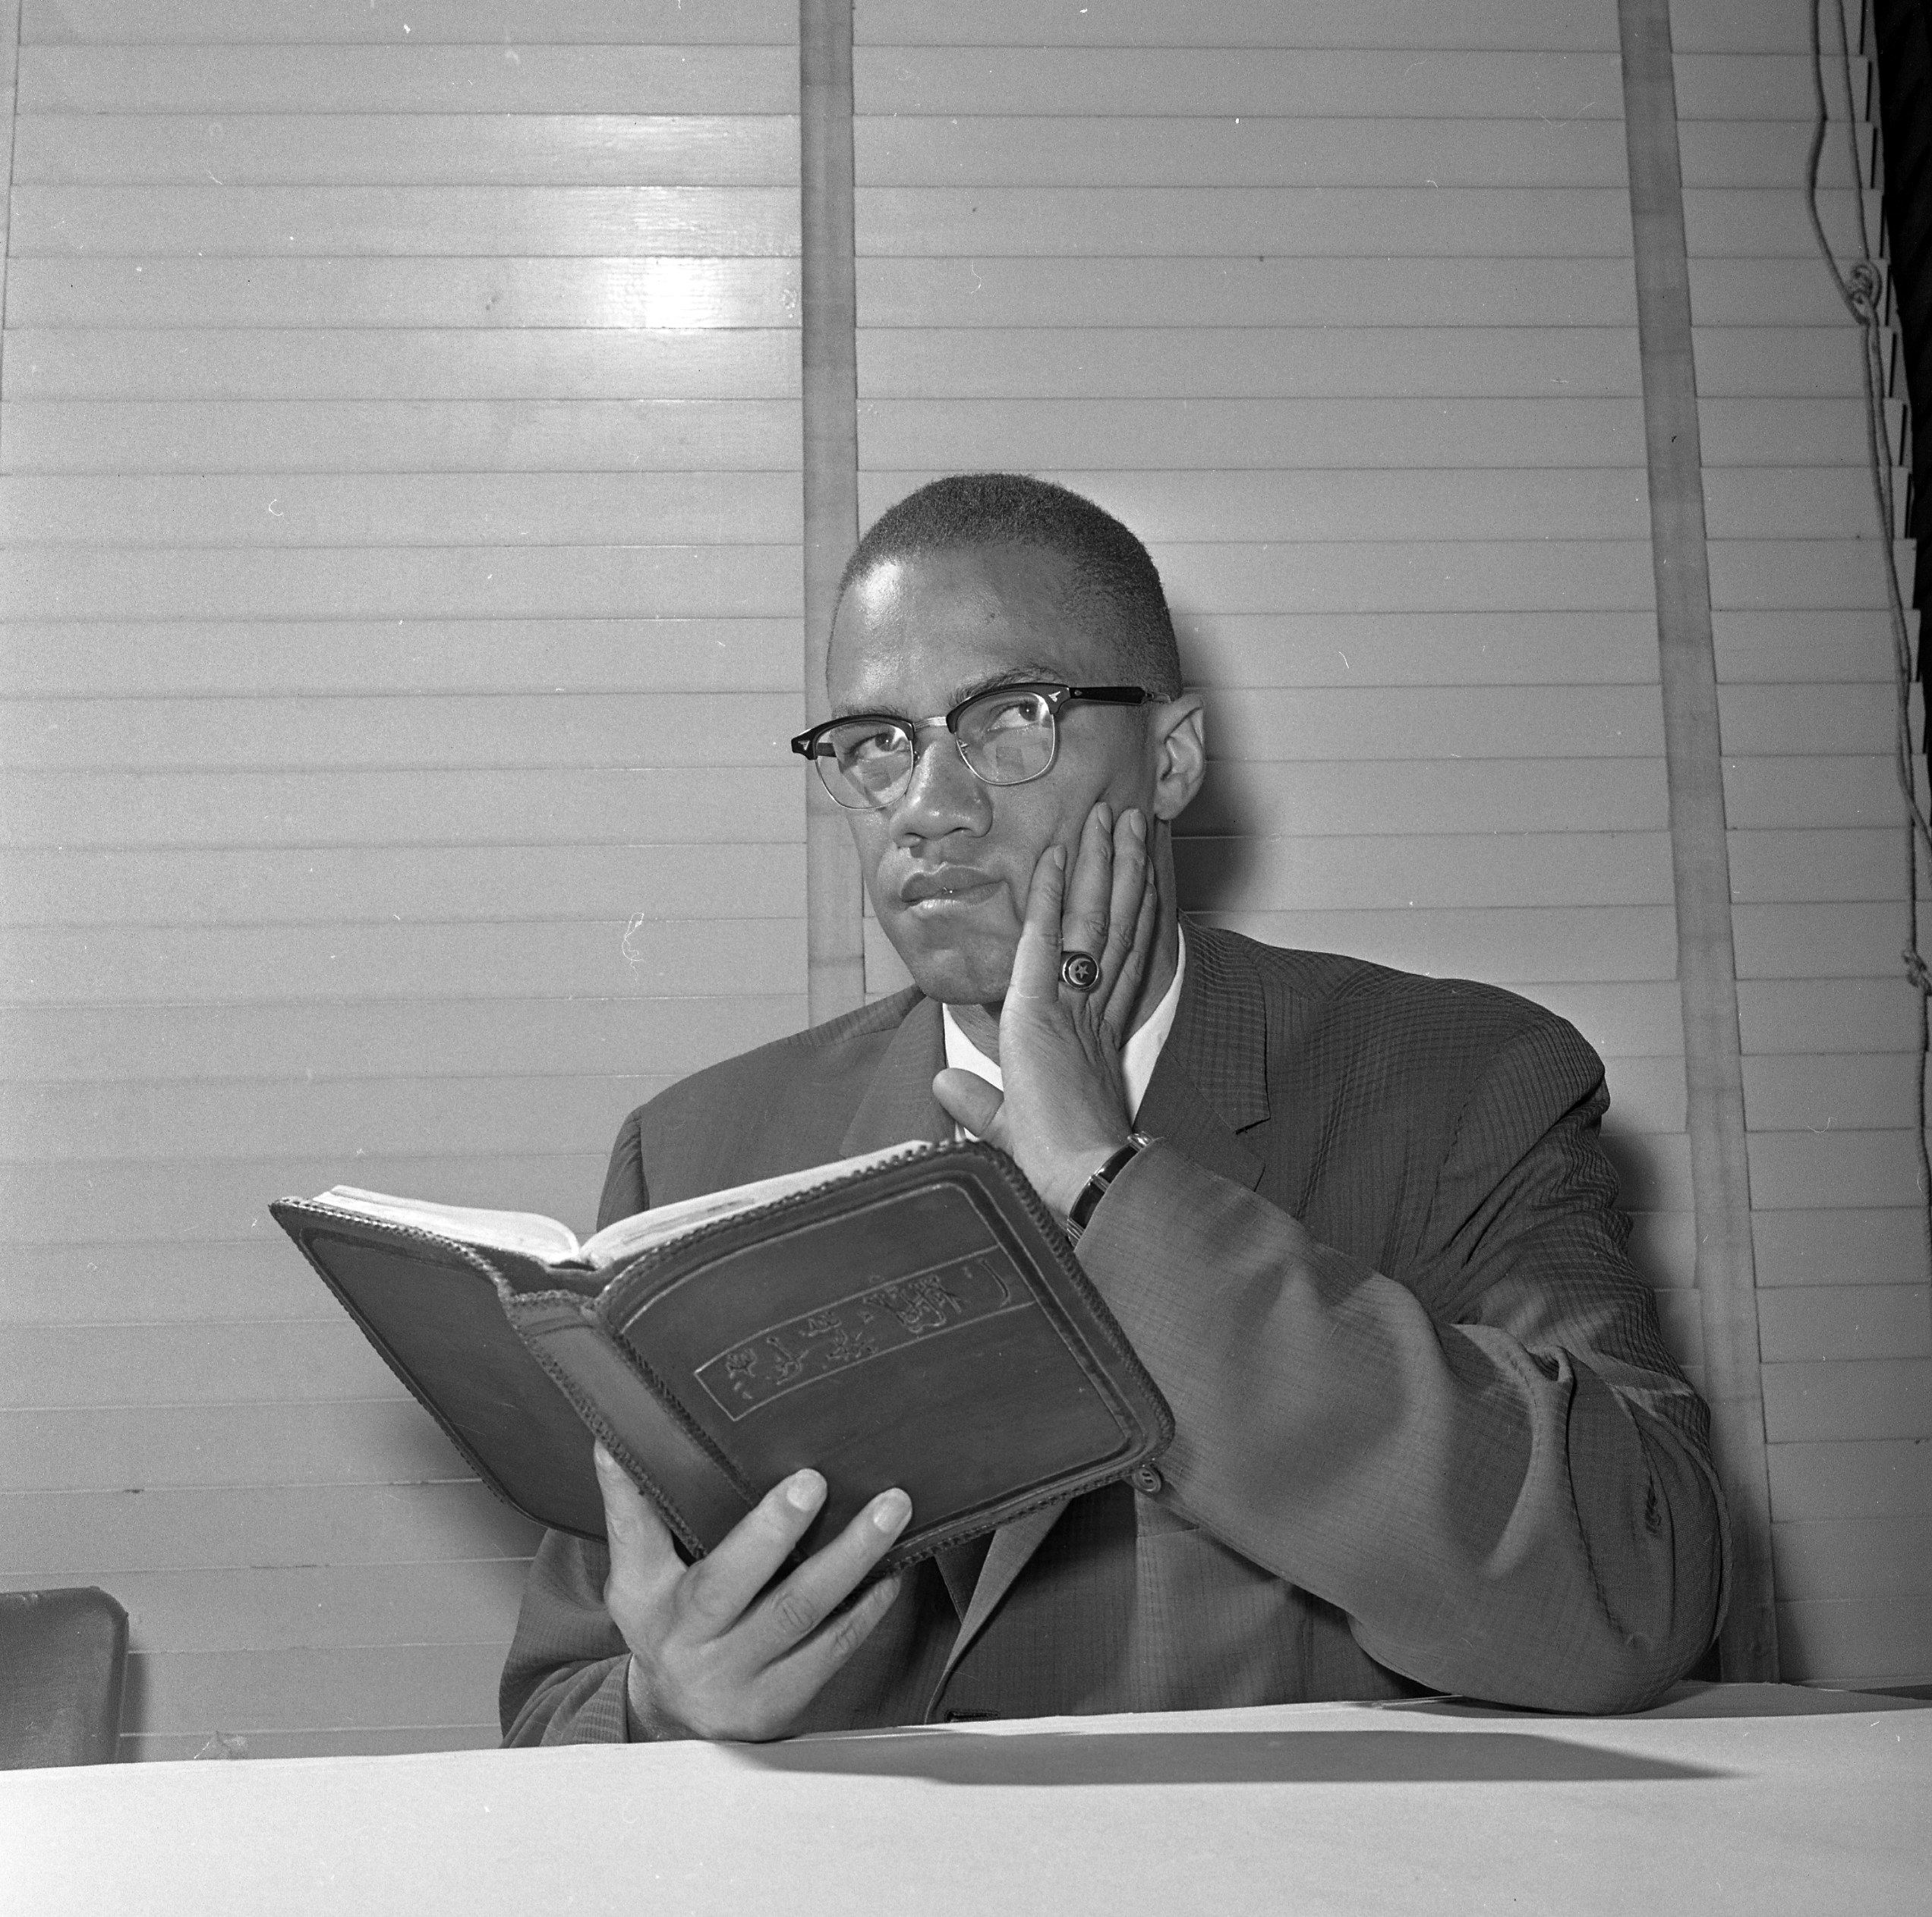 A man sits with his palm on the left side of his face and holds an open book in his other hand.